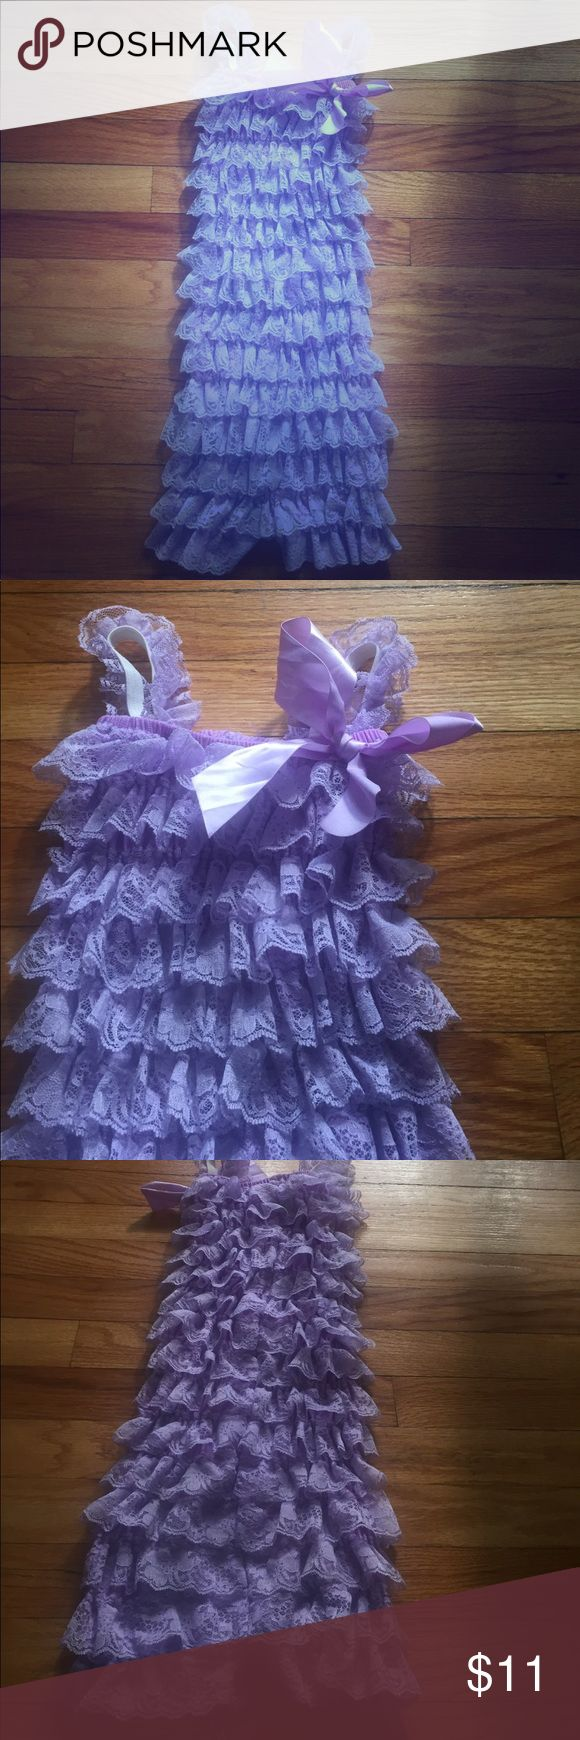 Adorable purple lace romper for girls Worn once. This romper is size xxl and will fit child age 5-7.  Stretchy material One Pieces Bodysuits